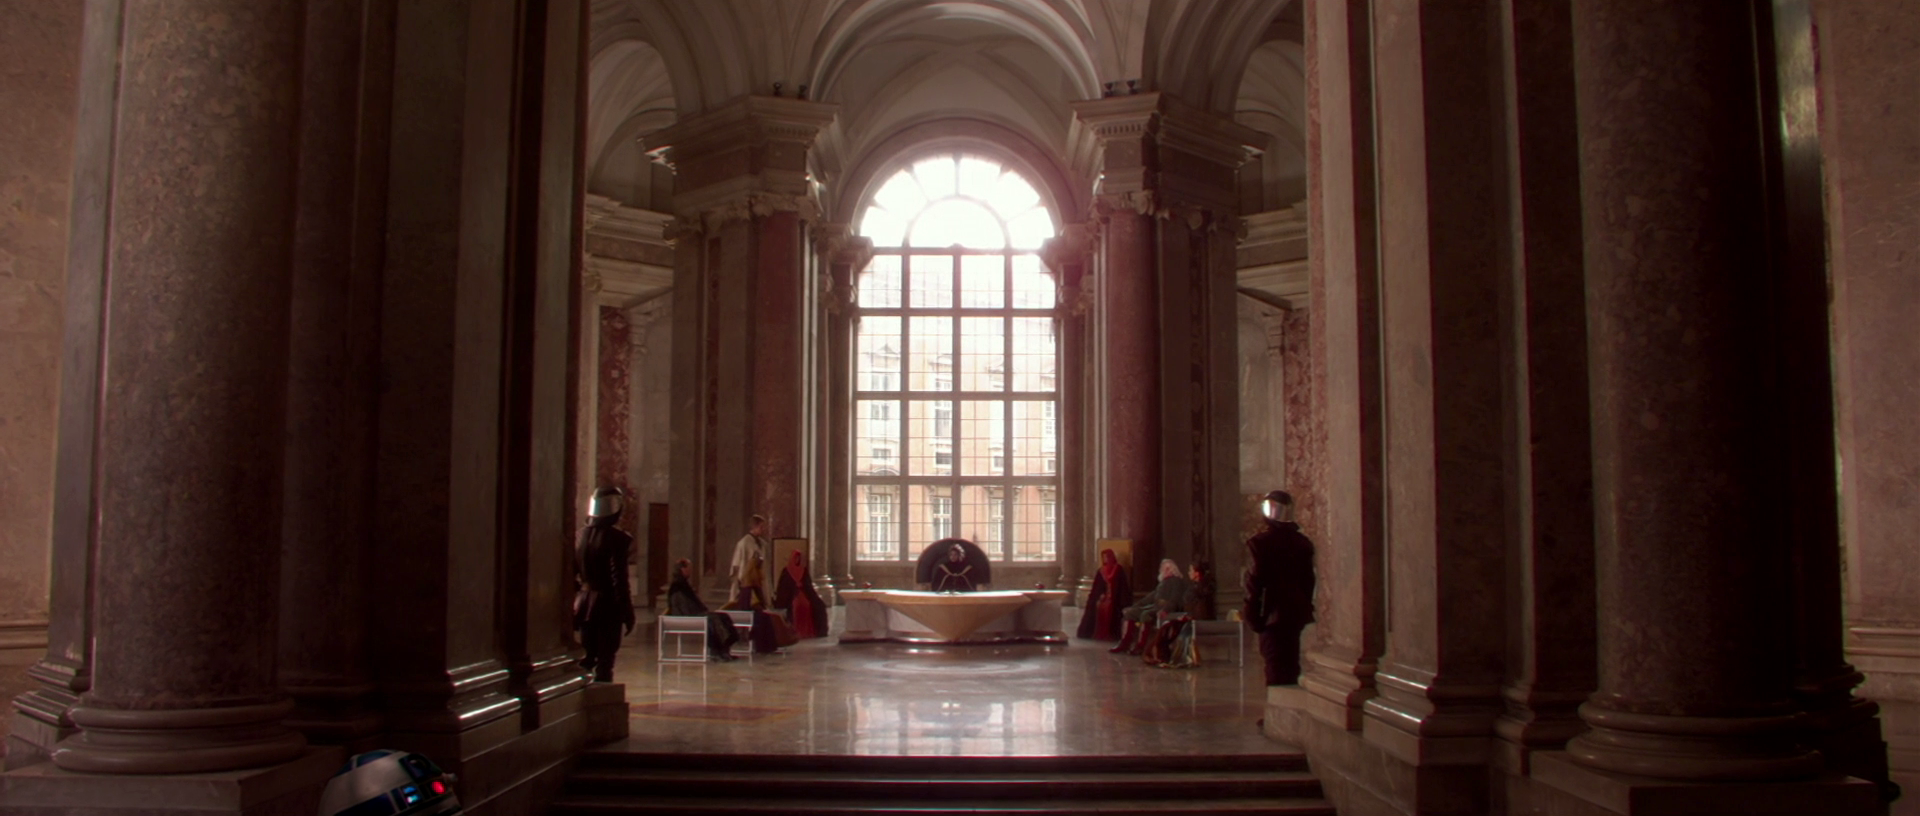 https://vignette.wikia.nocookie.net/starwars/images/7/75/Naboo_Throne_Room.png/revision/latest?cb=20130720034408